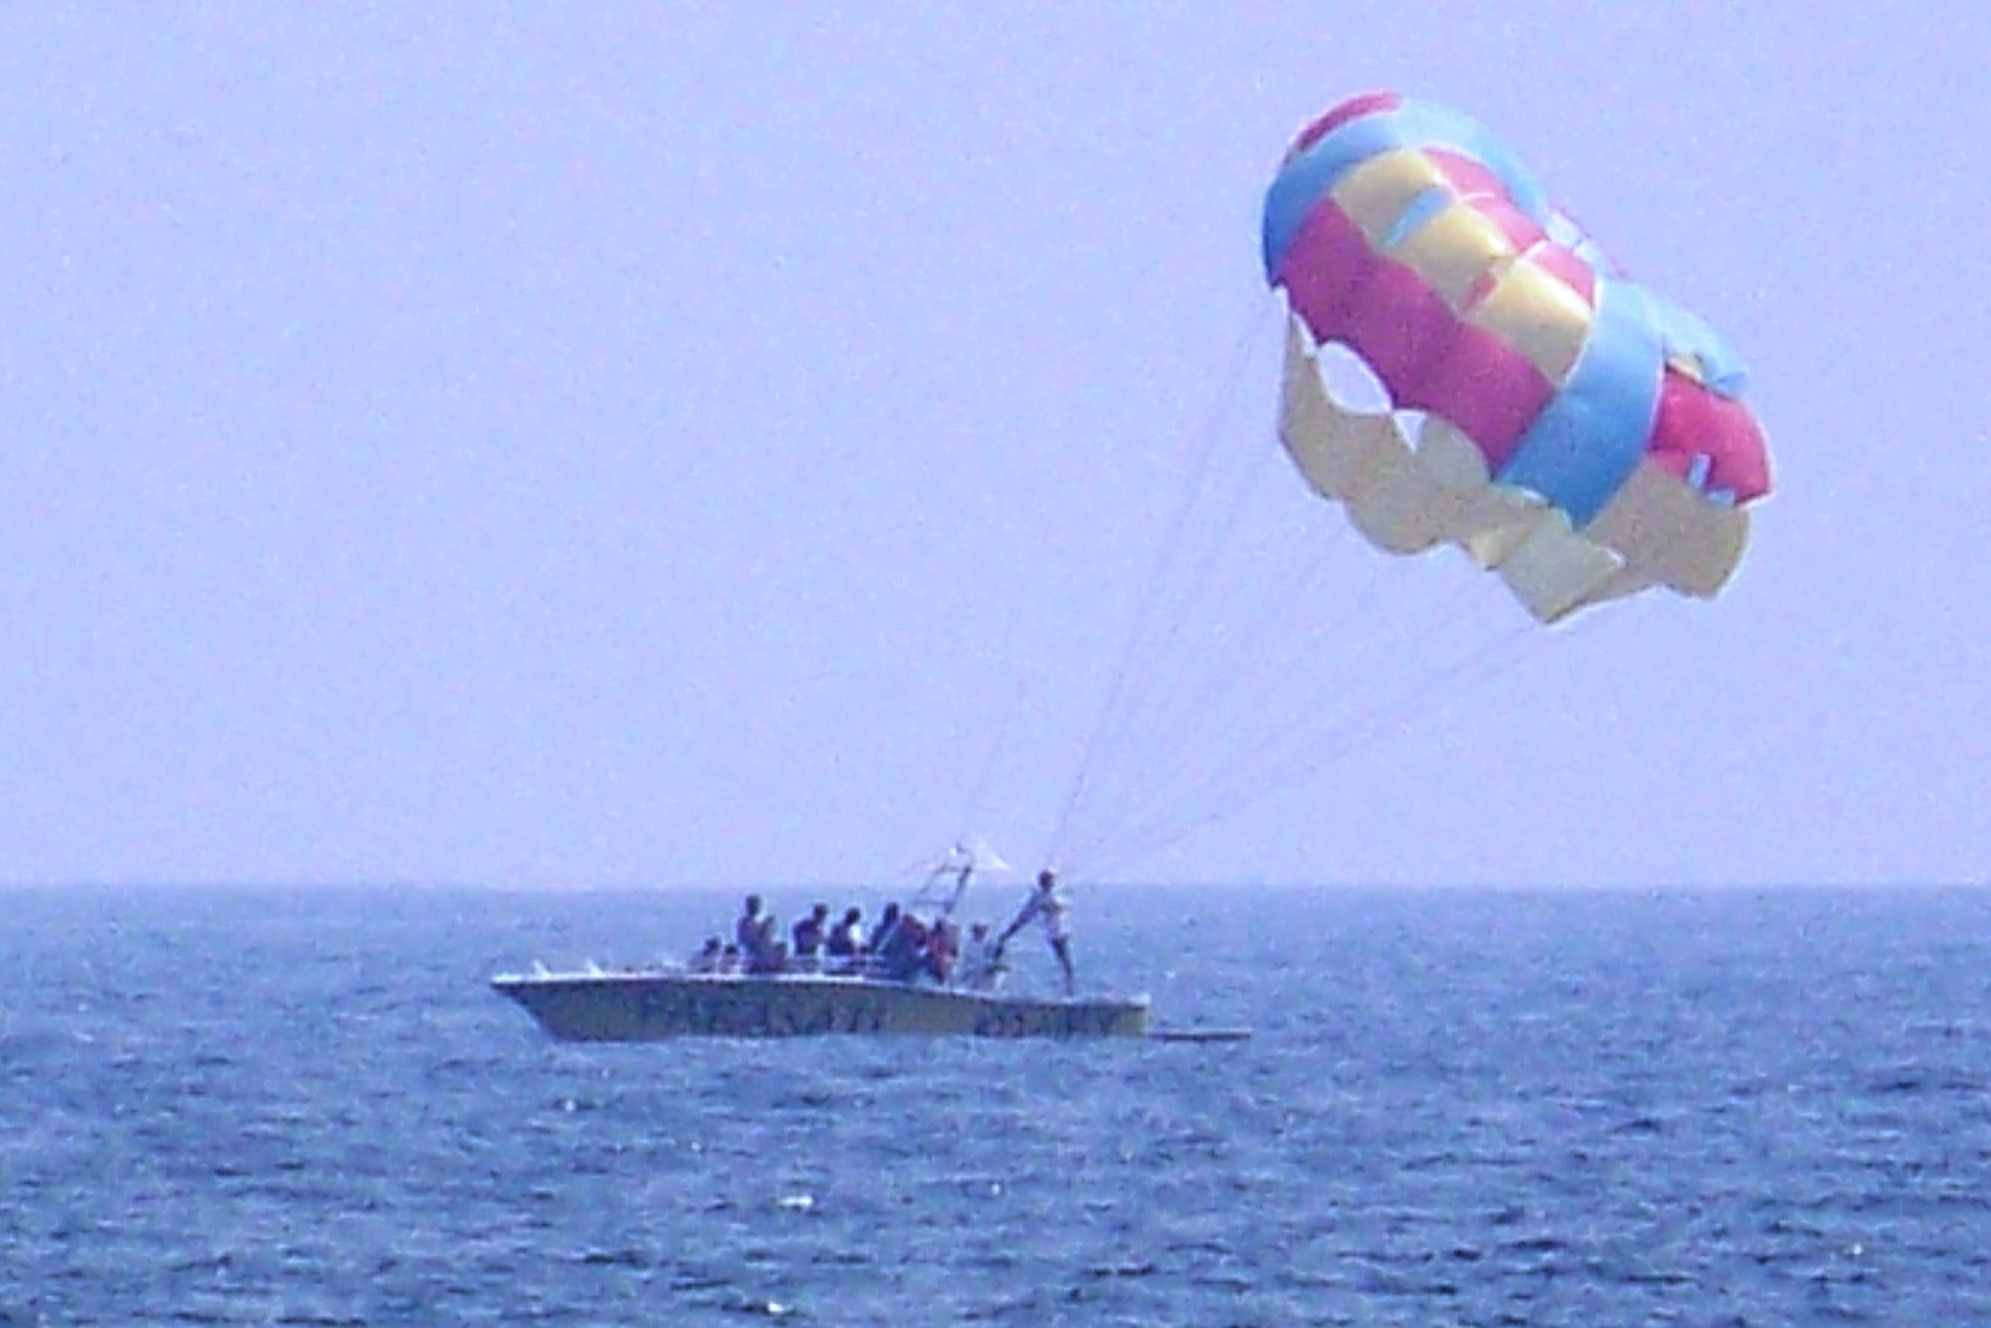 Parasail boat at Virginia Beach, VA